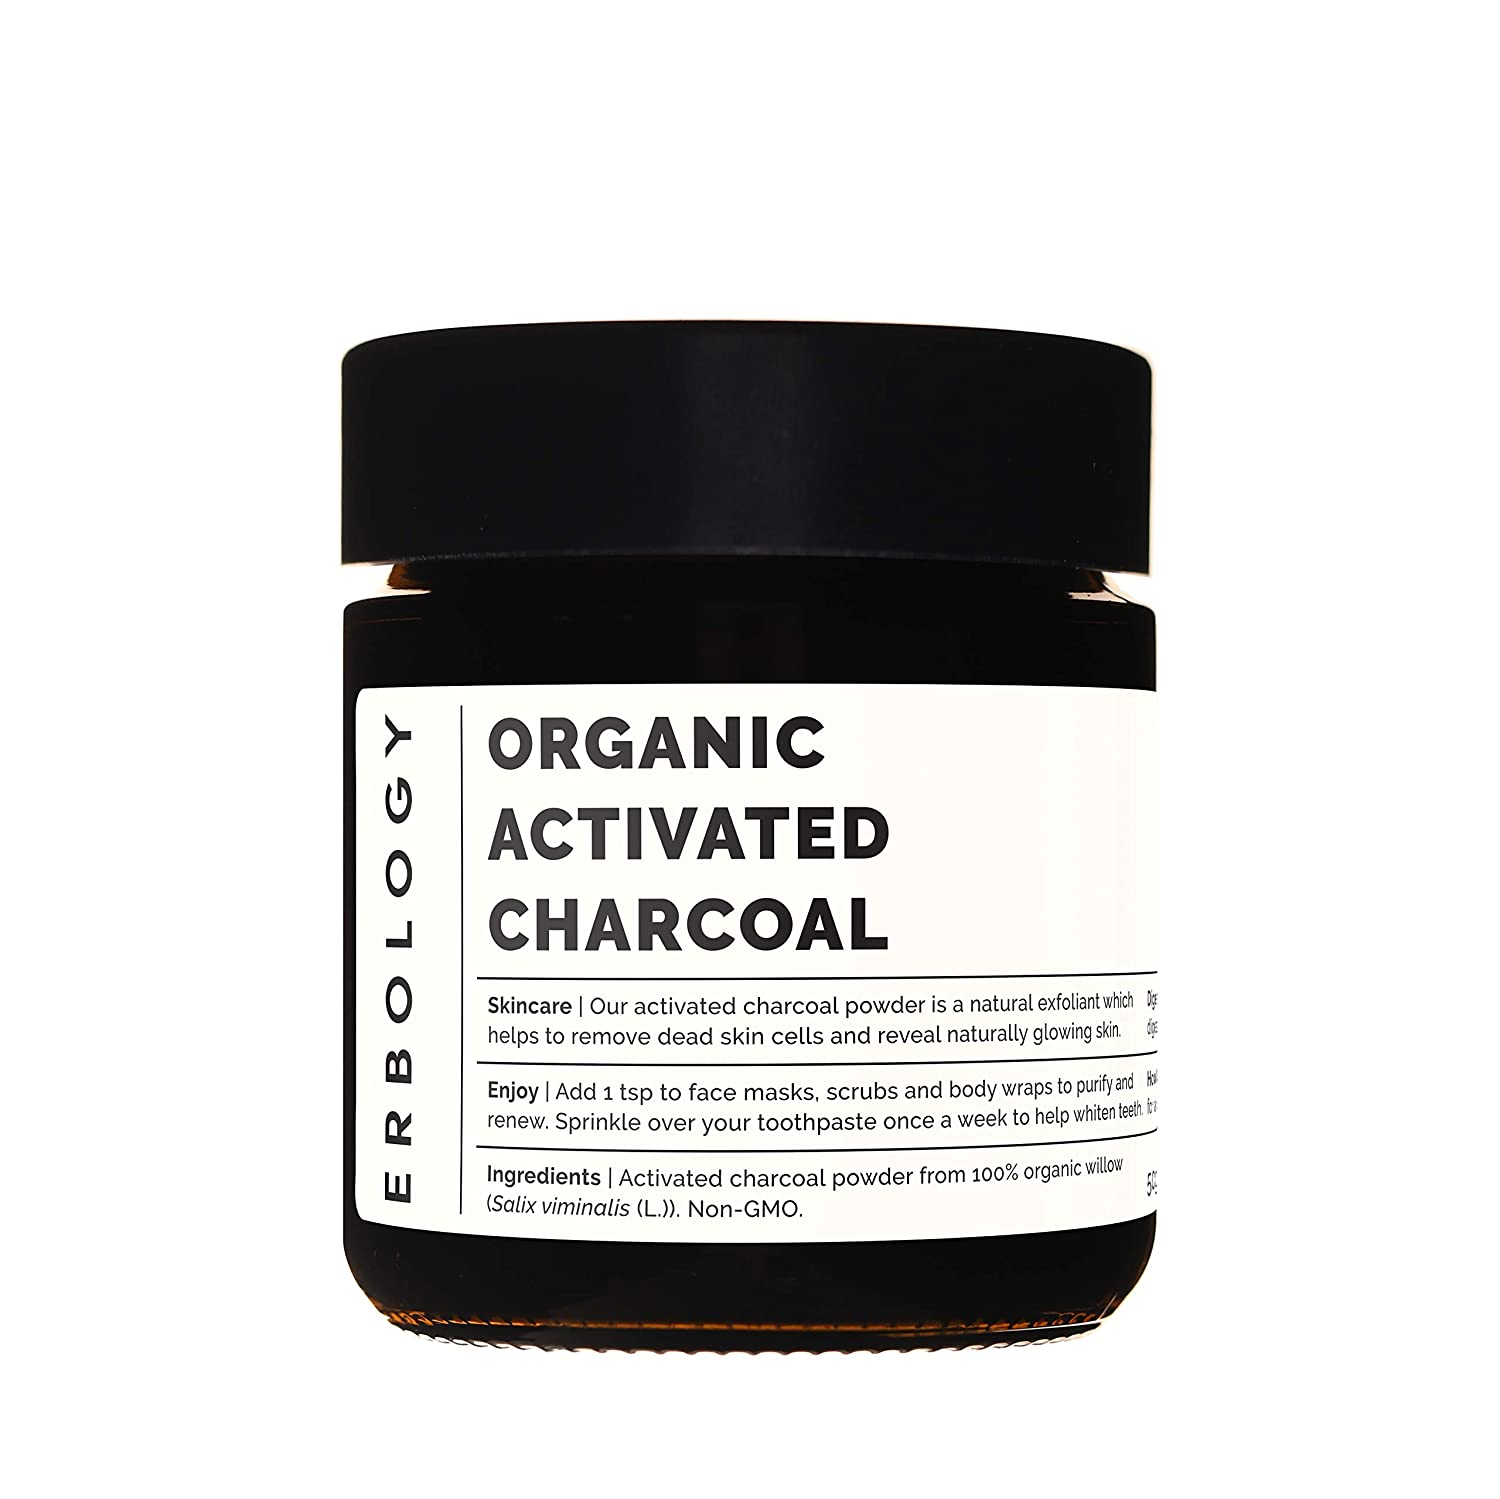 Organic Activated Charcoal 1.8 oz - Food Grade - Teeth Whitening - Digestive Aid